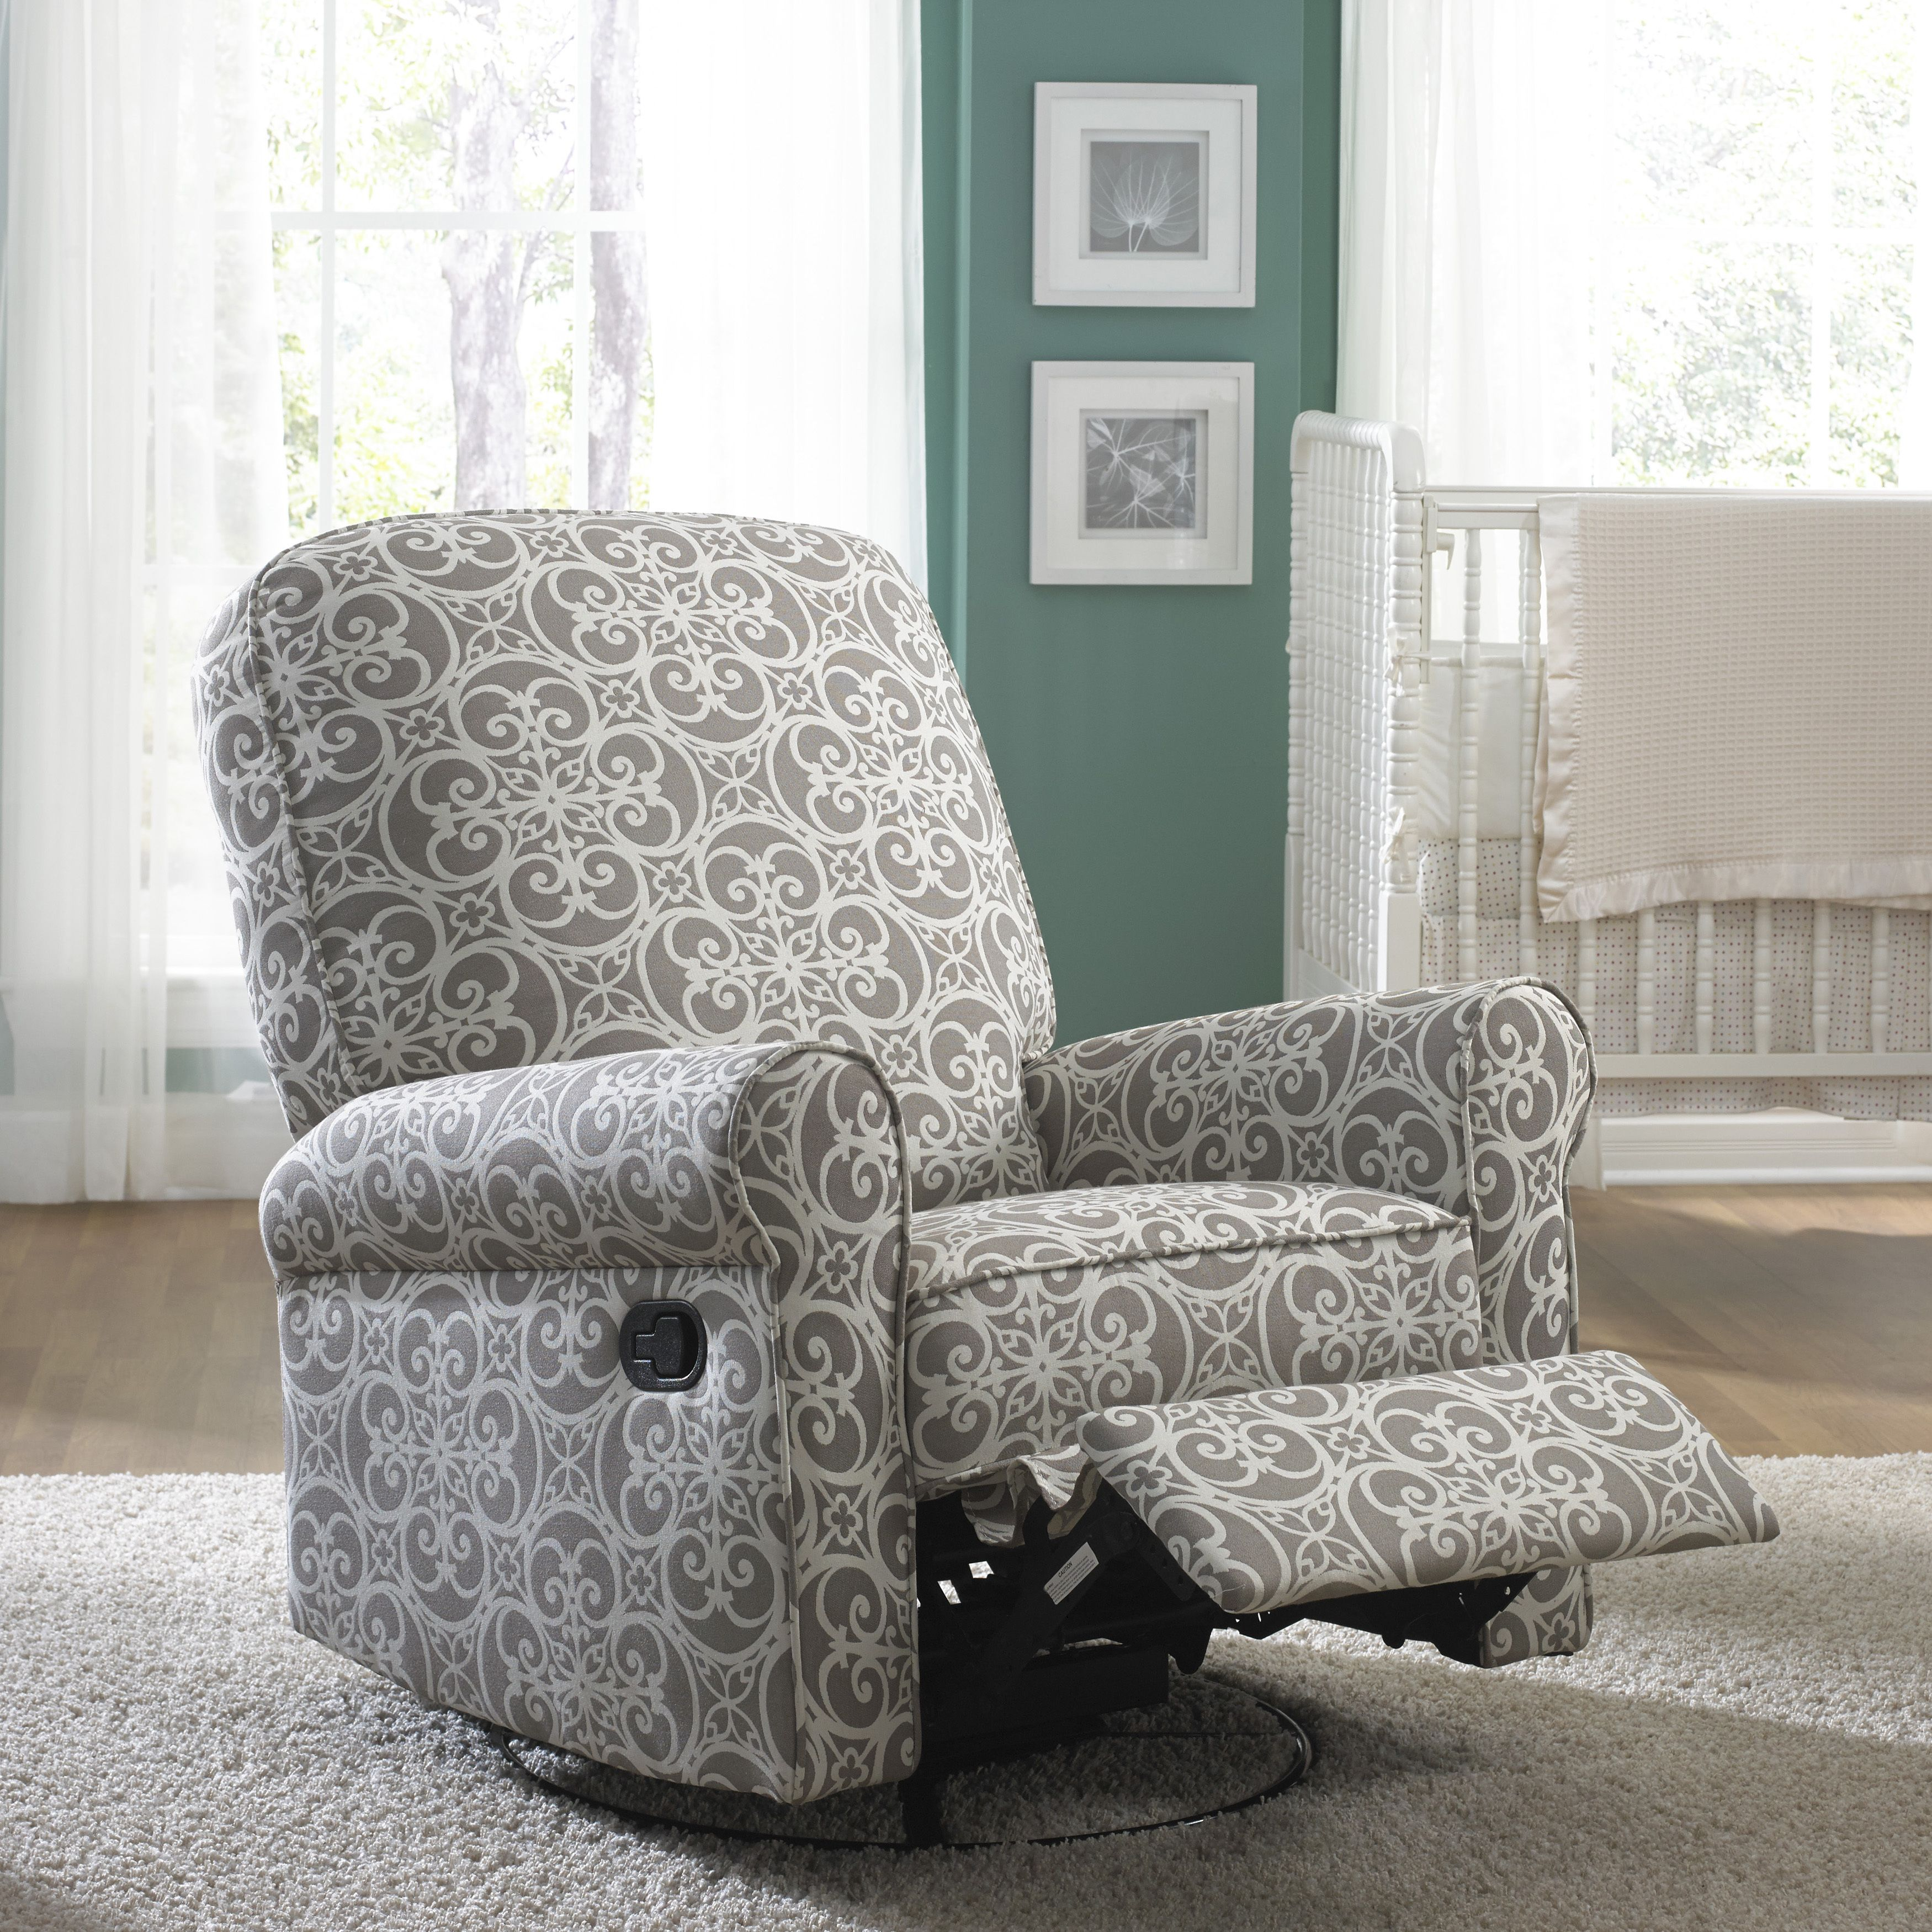 Glider Recliner Chair Blue Chairs Resort By The Sea Jackson Grey And Cream Fabric Nursery Swivel Size Oversized